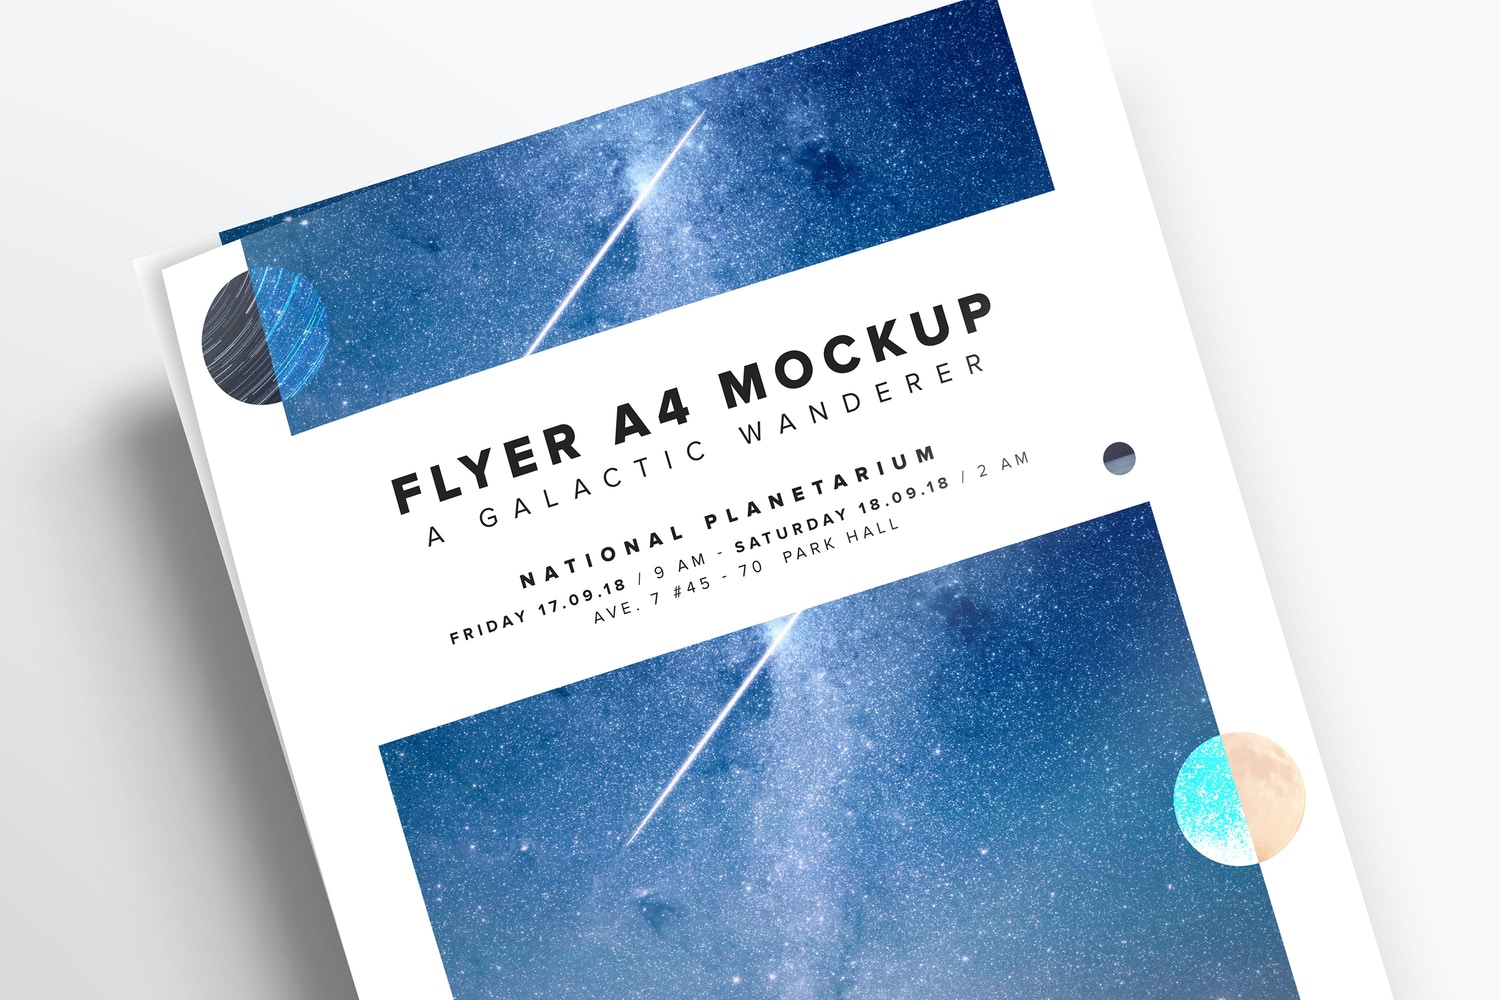 A4 - A5 Flyer Close-Up Mockup